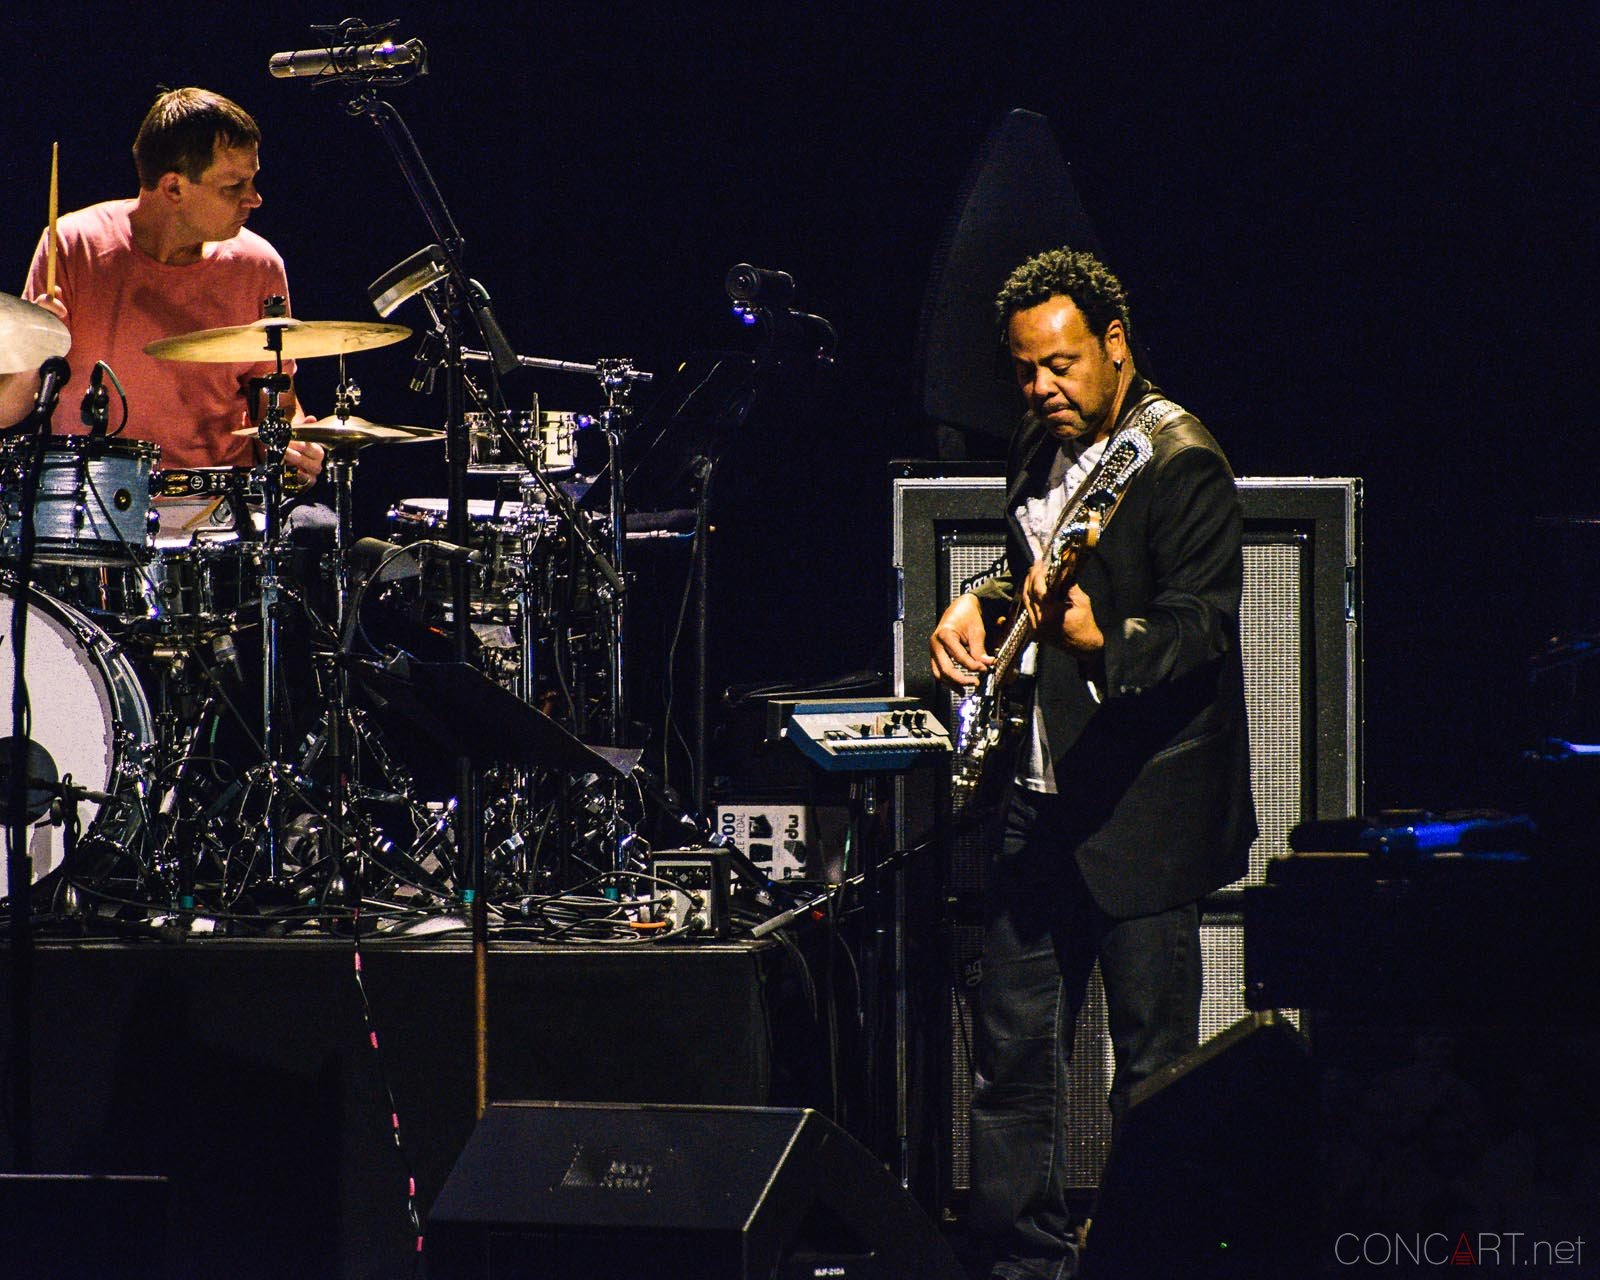 steely_dan_live_old_national_murat_theatre_indianapolis_2013-23